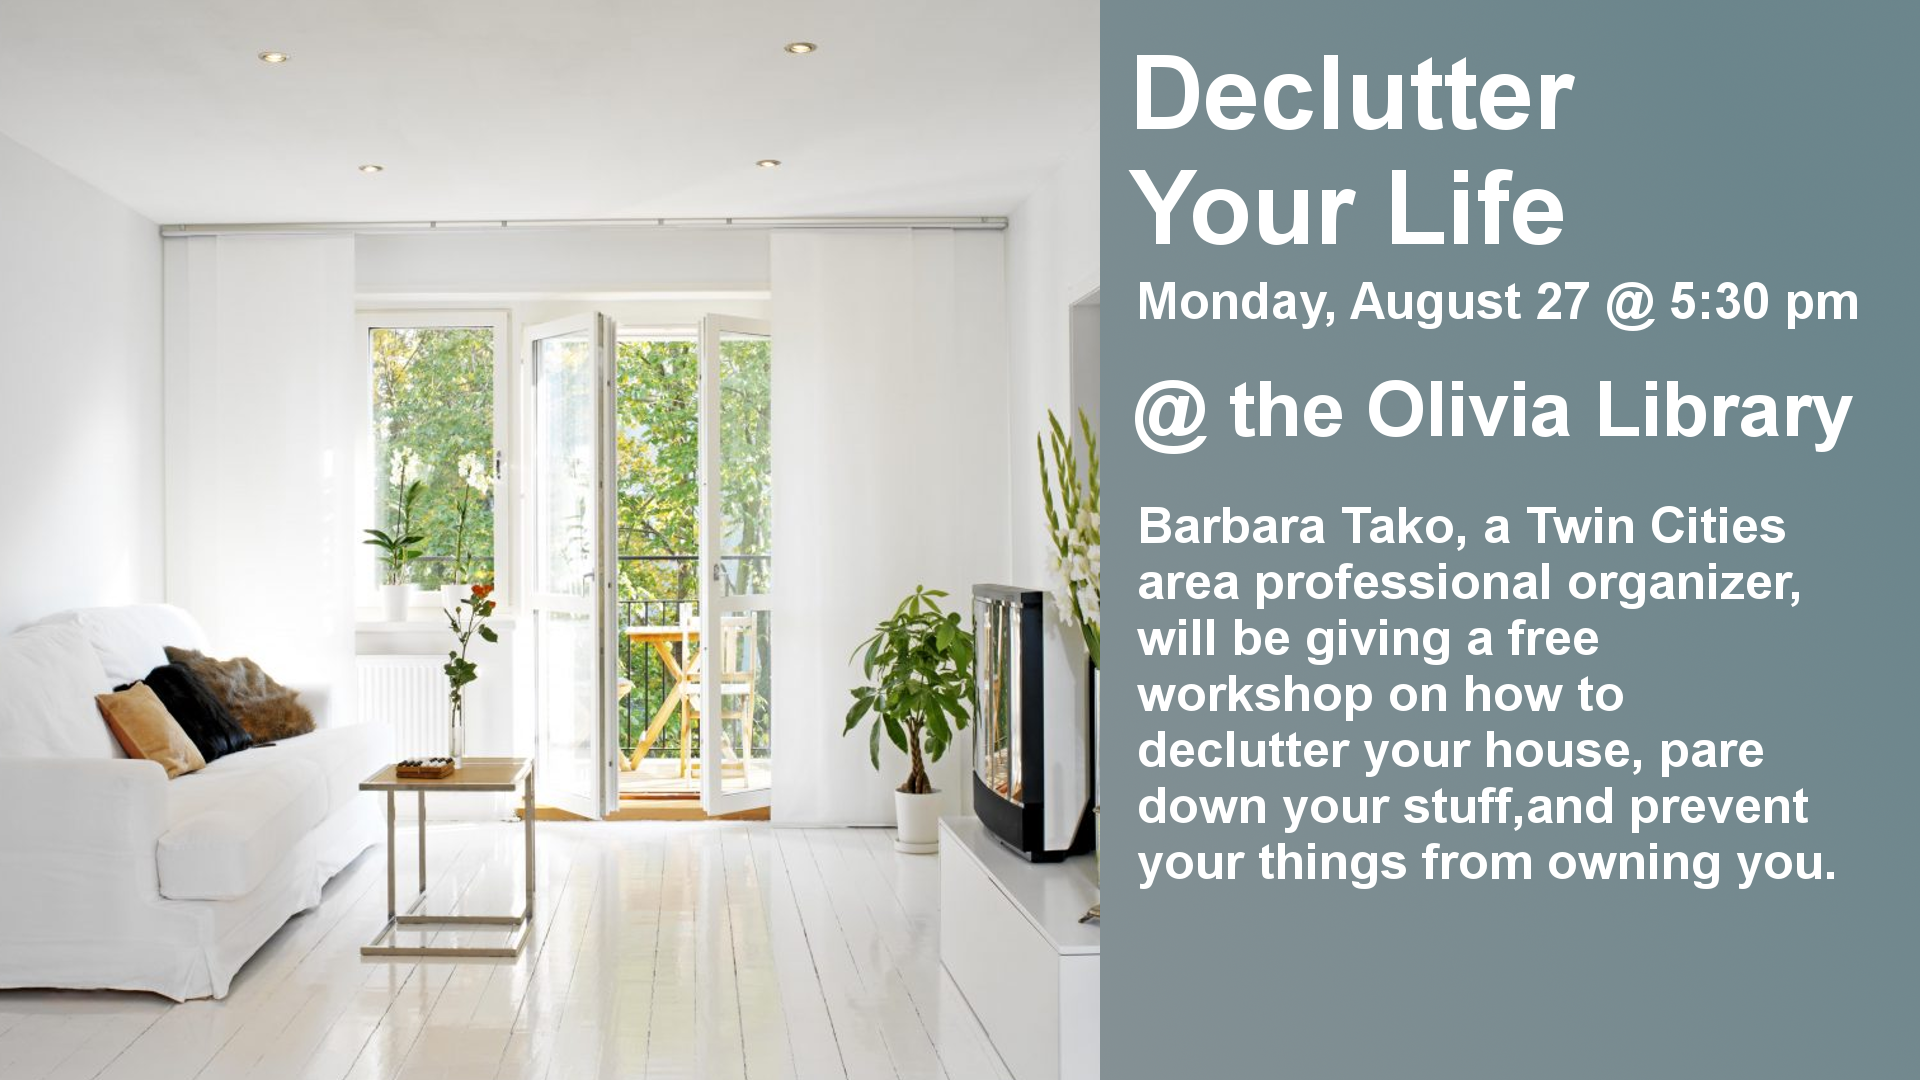 Monday, August 27 @ 5:30 @ the Olivia Library. Barbara Tako, a twin cities area professional organizer, will be giving a free workshop on how to declutter your house, pare down your stuff, and prevent your things from owning you.